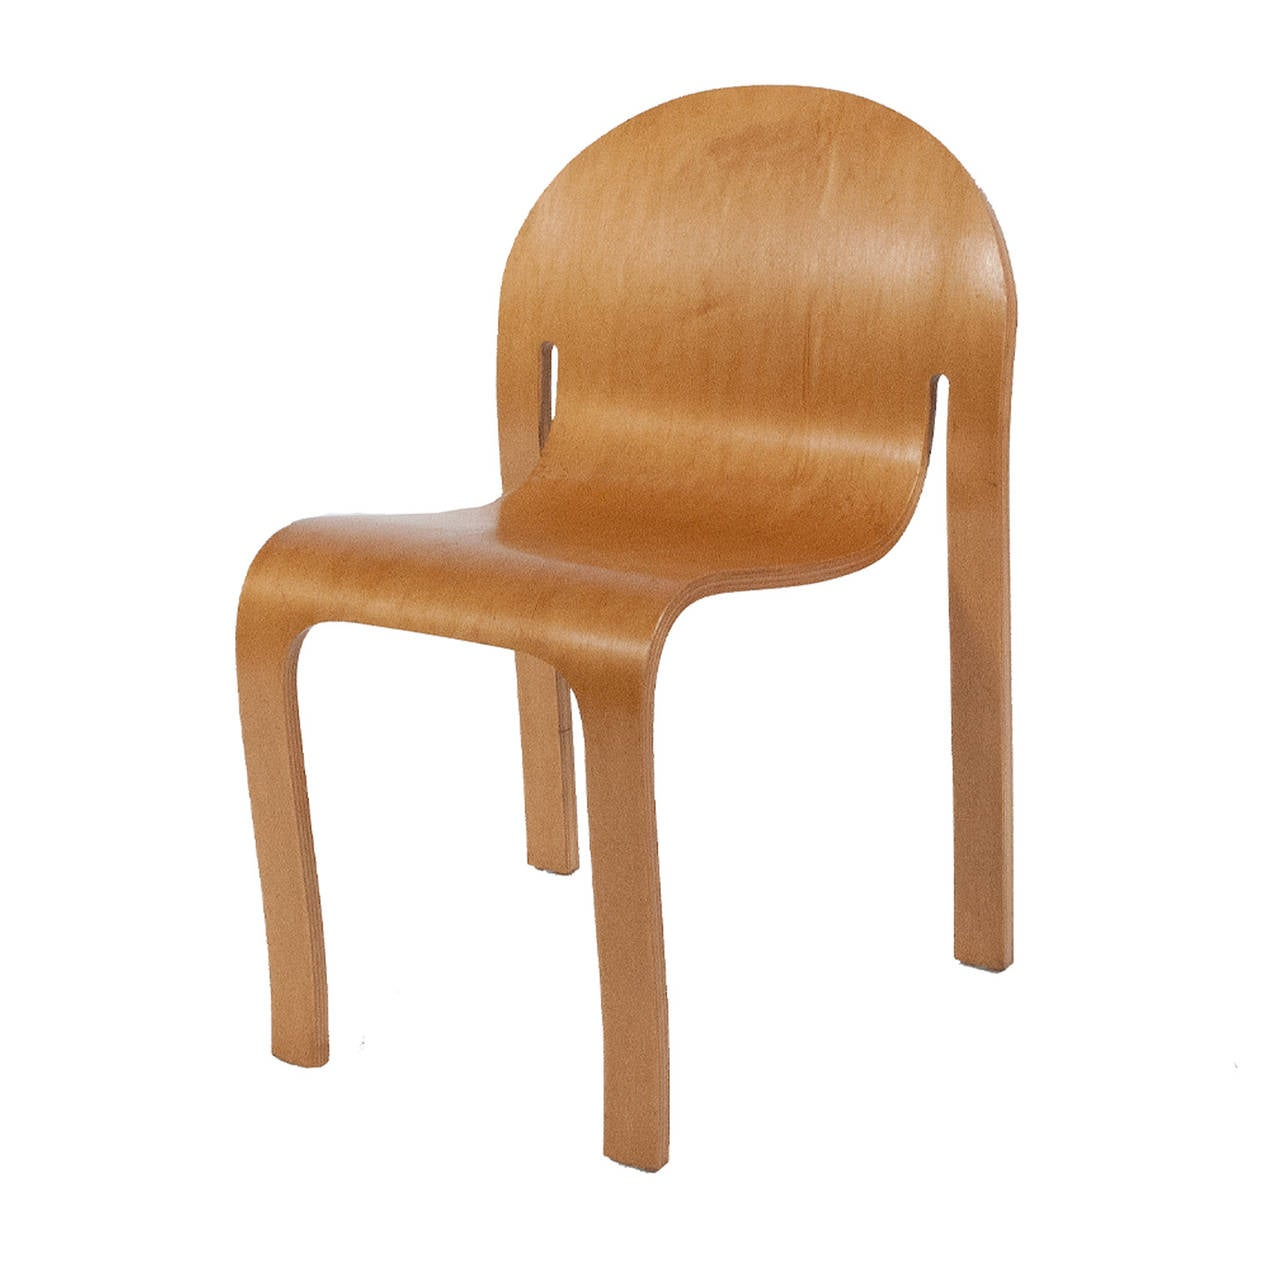 Superior Eco Eden Chairs By Peter Danko 3